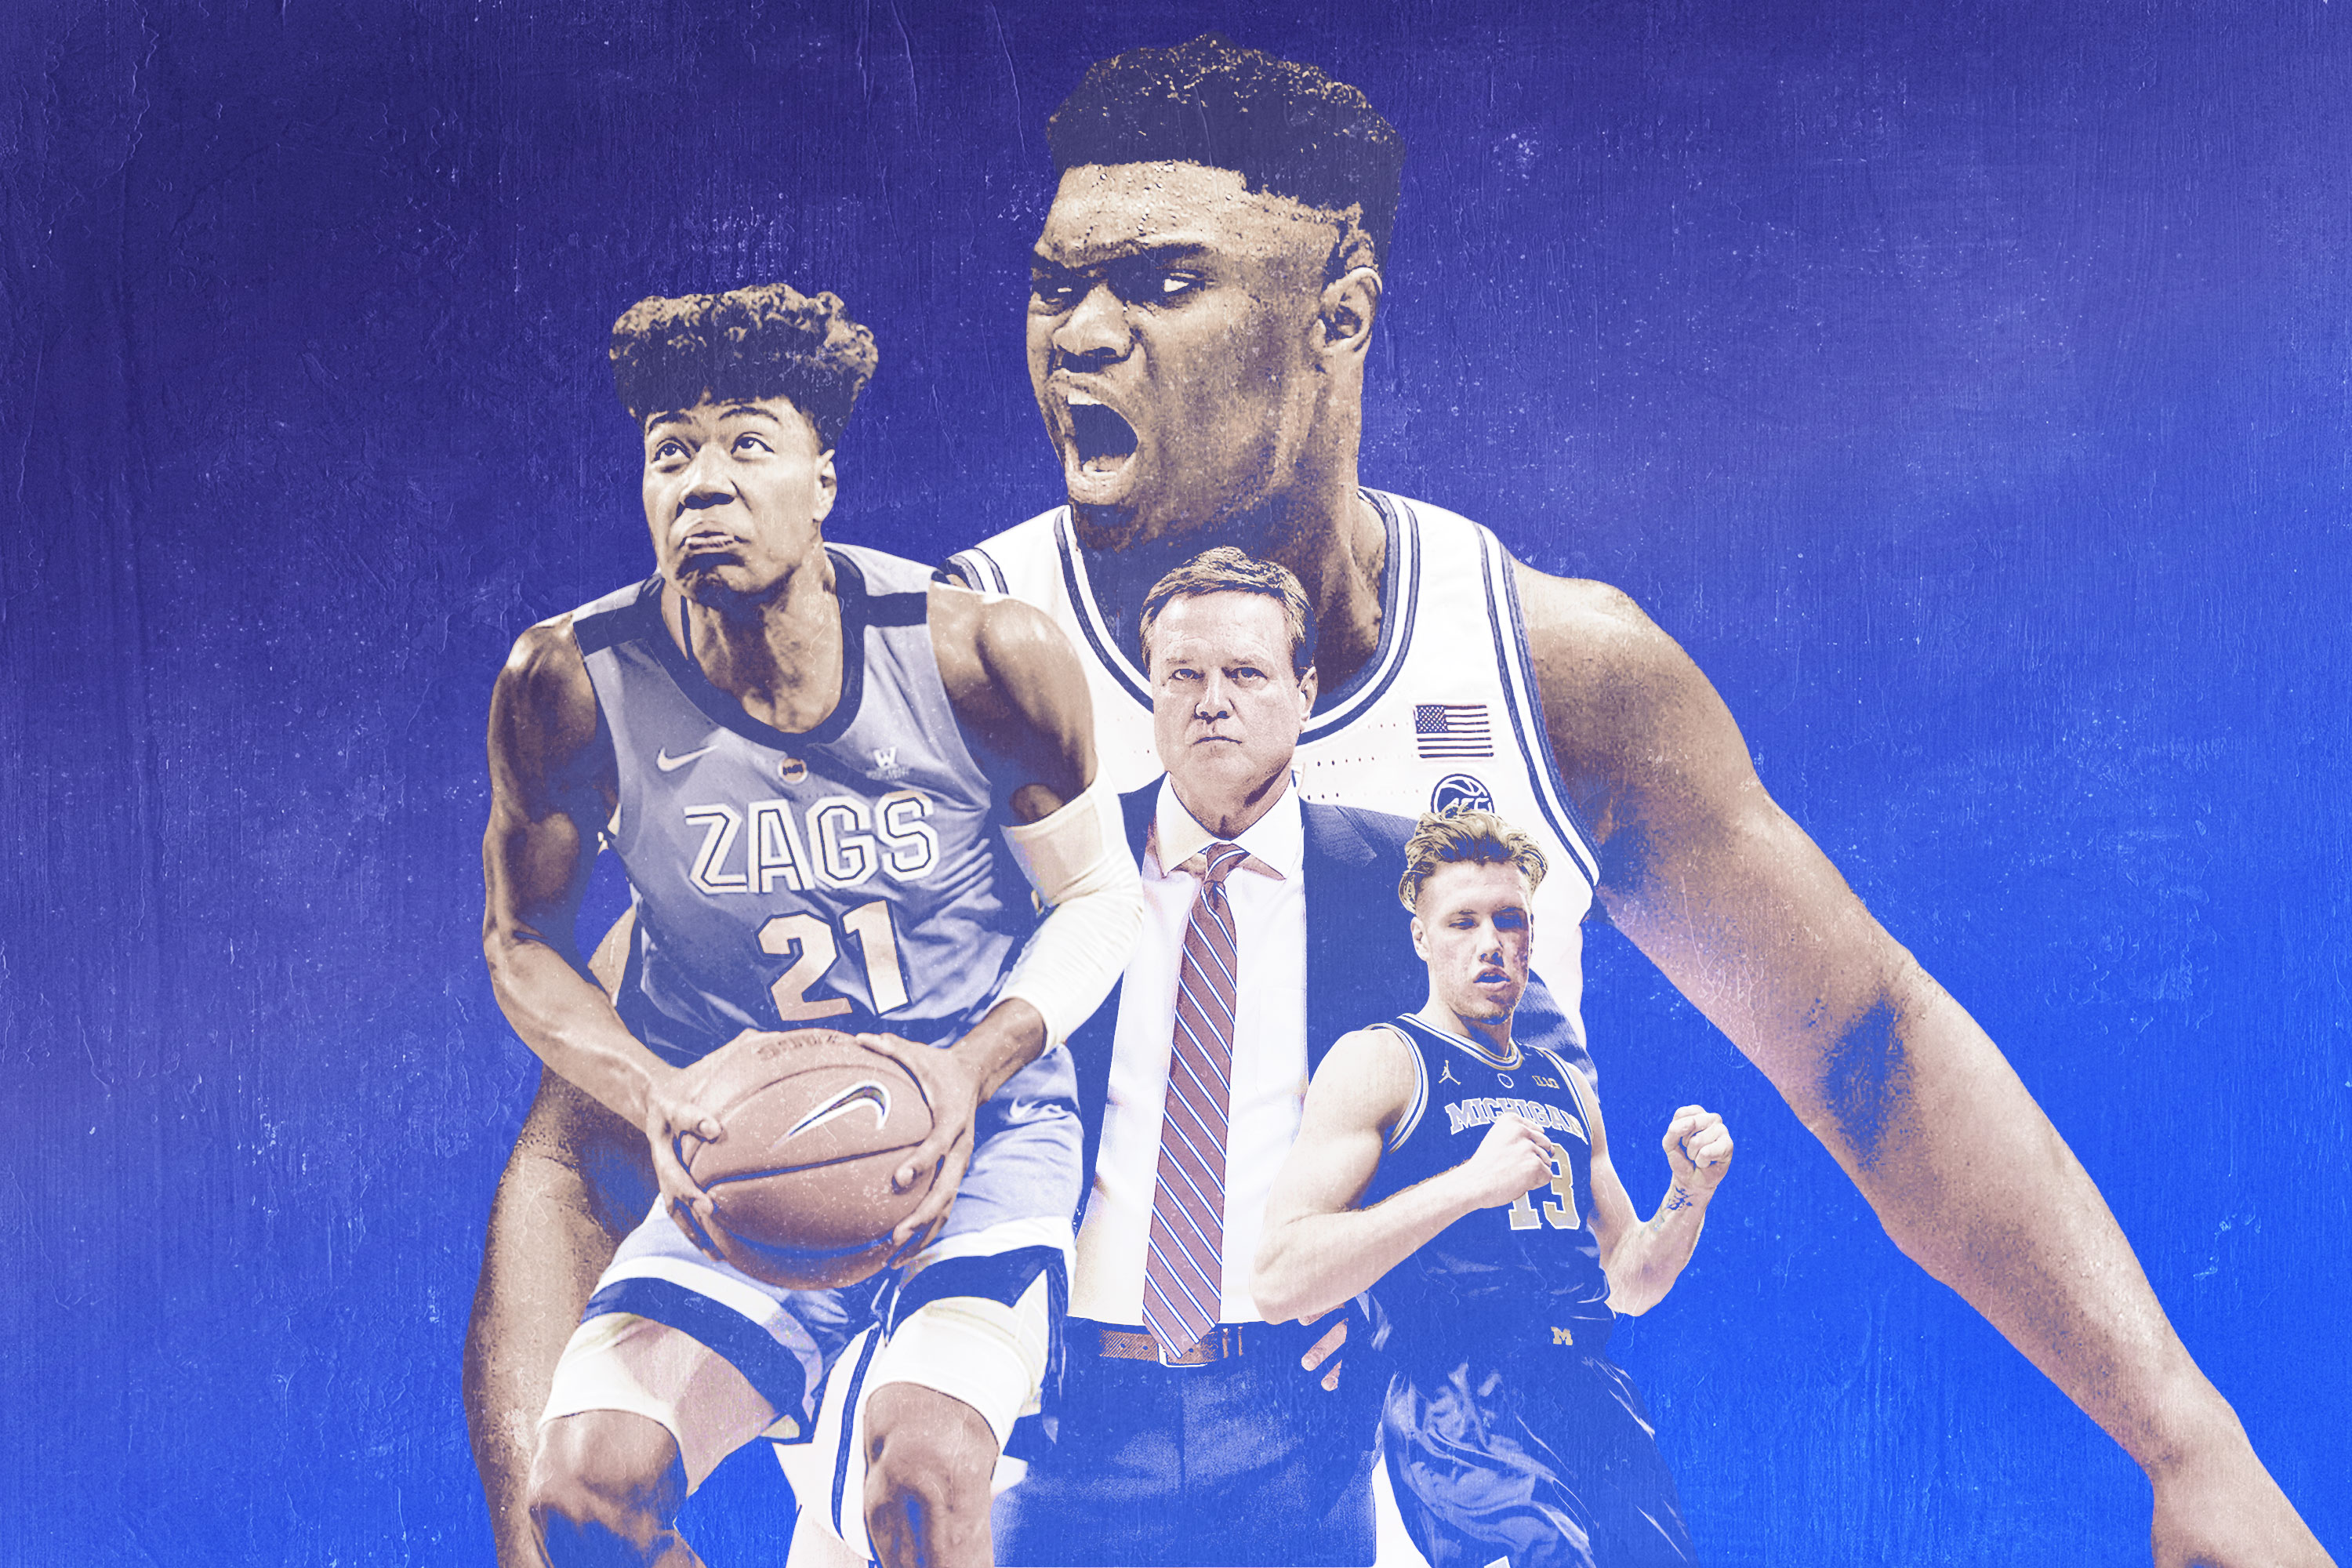 a3b3ce7e0a61e College Basketball Power Rankings: Duke Is Outflanked by Michigan and  Gonzaga